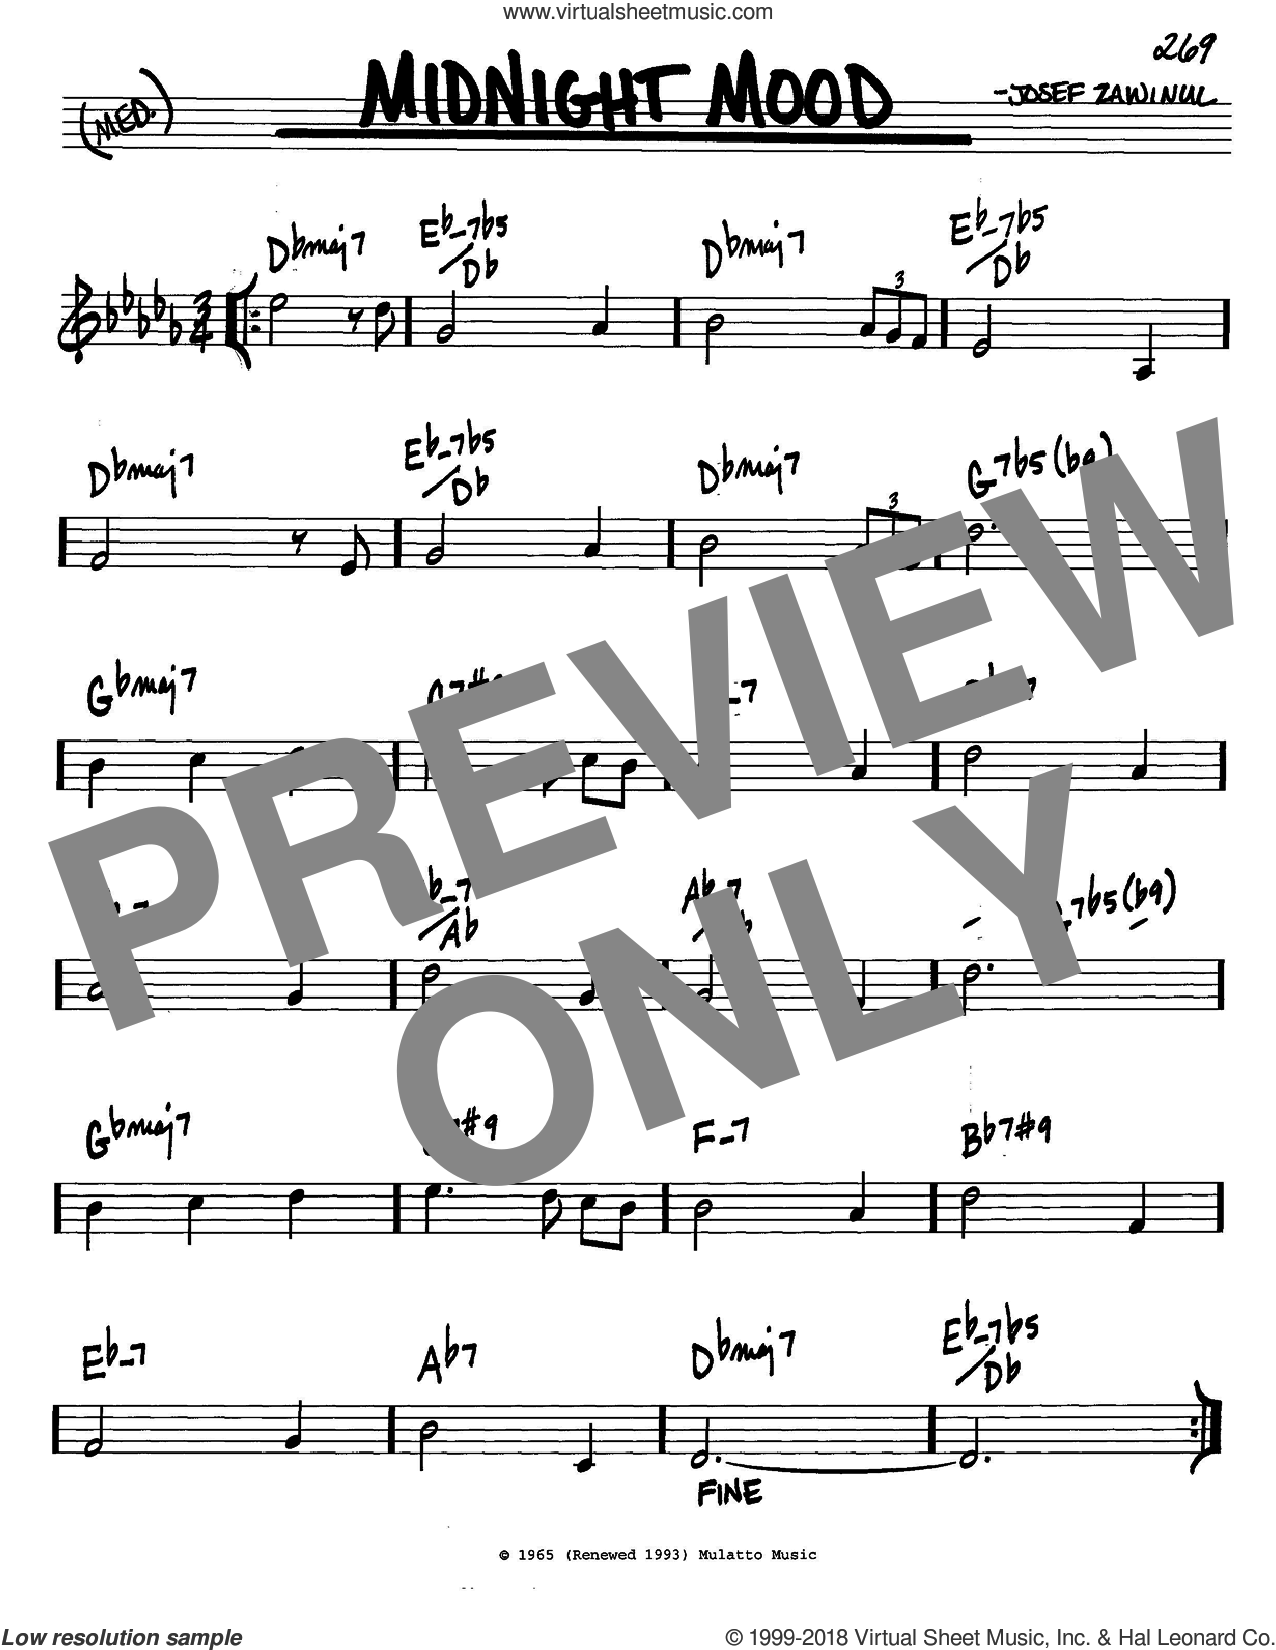 Midnight Mood sheet music for voice and other instruments (in C) by Josef Zawinul, Bill Evans and Ben Raleigh, intermediate